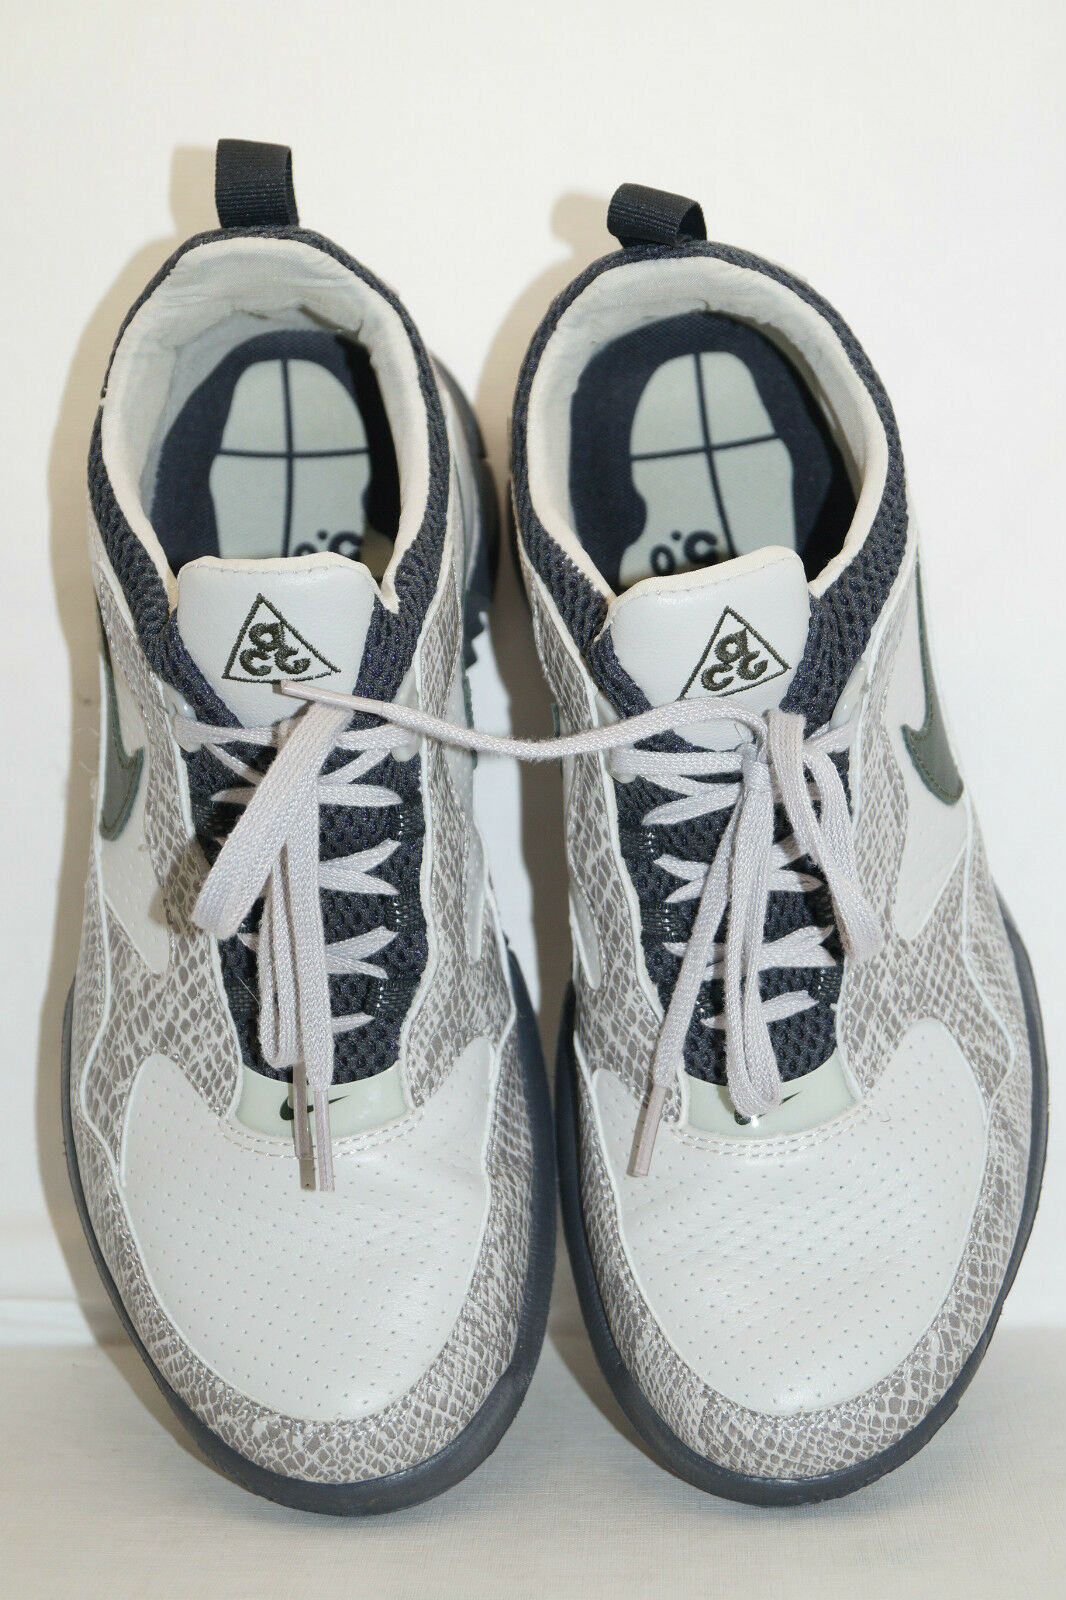 NIKE WILDWOOD 90 Free Edition Trail Gr.42,5 UK.8 Limited Edition Free for Symbolic 316352-032 969473